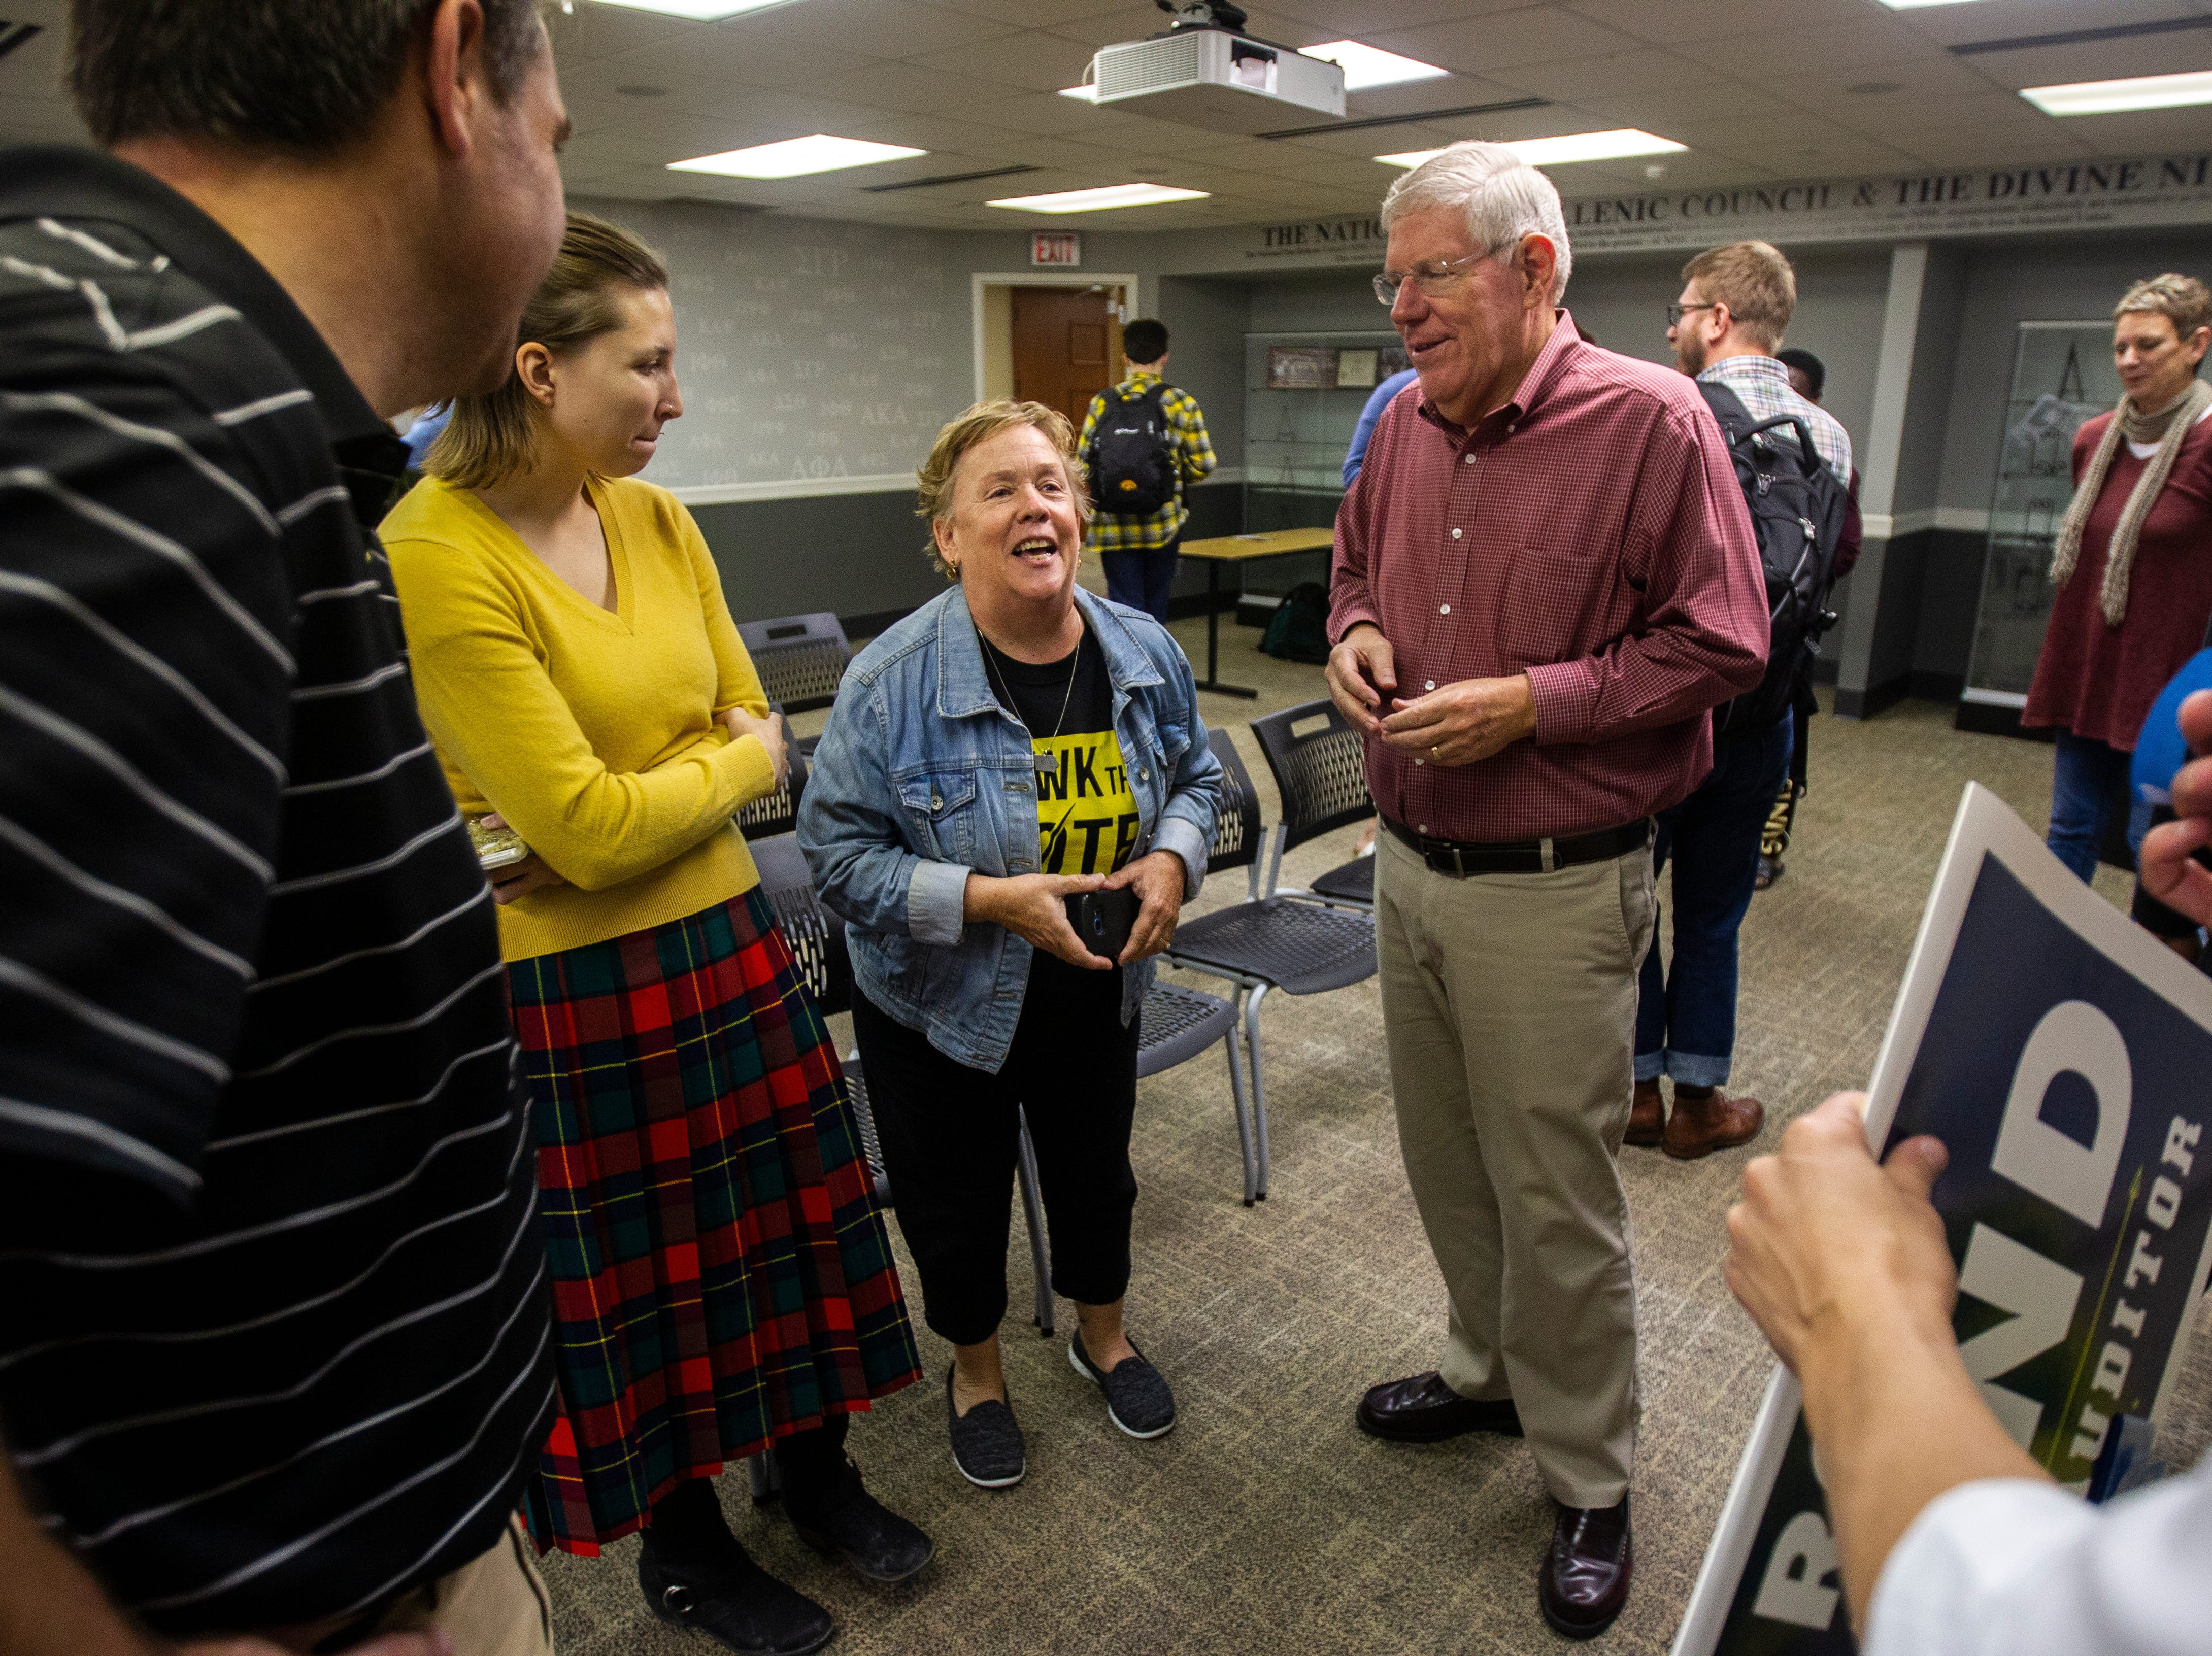 Sue Dvorsky (center) laughs while talking with Tim Gannon, Kalena Meyer, during an event on Wednesday, Sept. 26, 2018, at the Iowa Memorial Union on the University of Iowa campus in Iowa City.